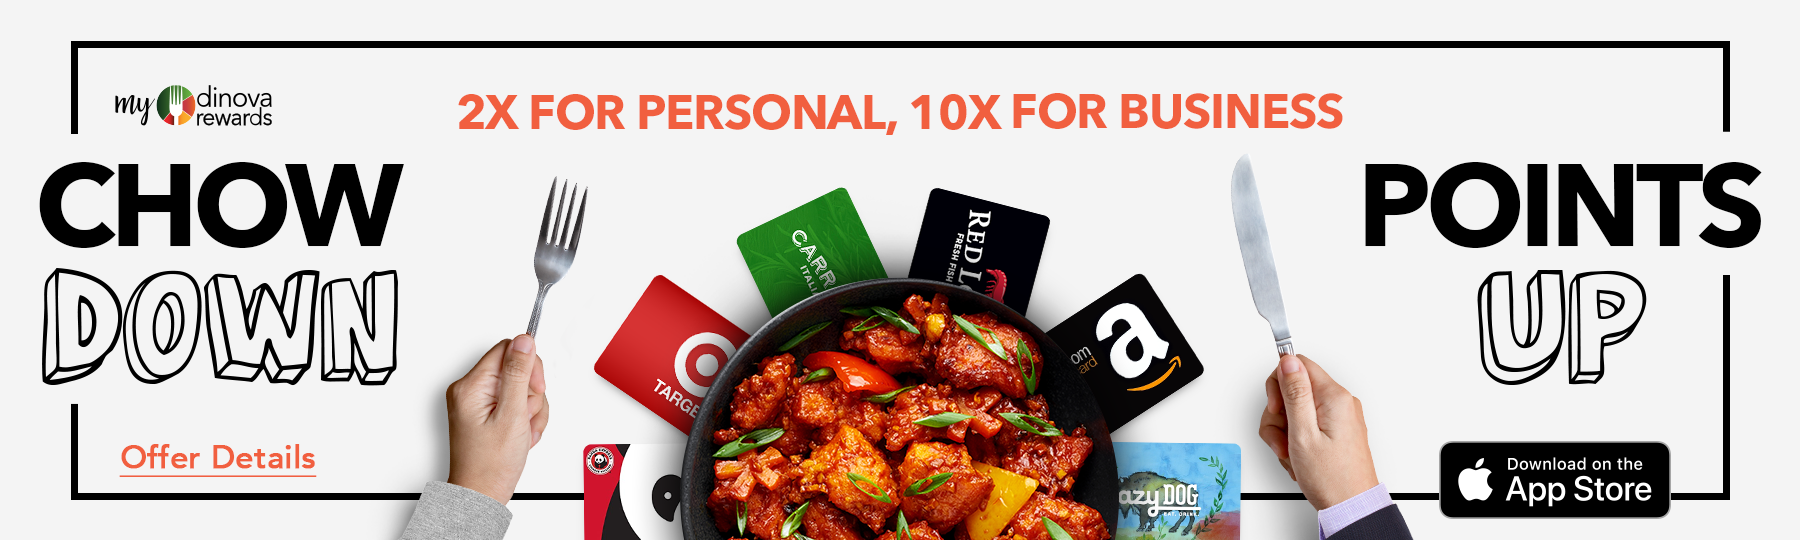 myDinova offer banner 2x personal points and 10x business dining points, sized 1800 by 540 pixels